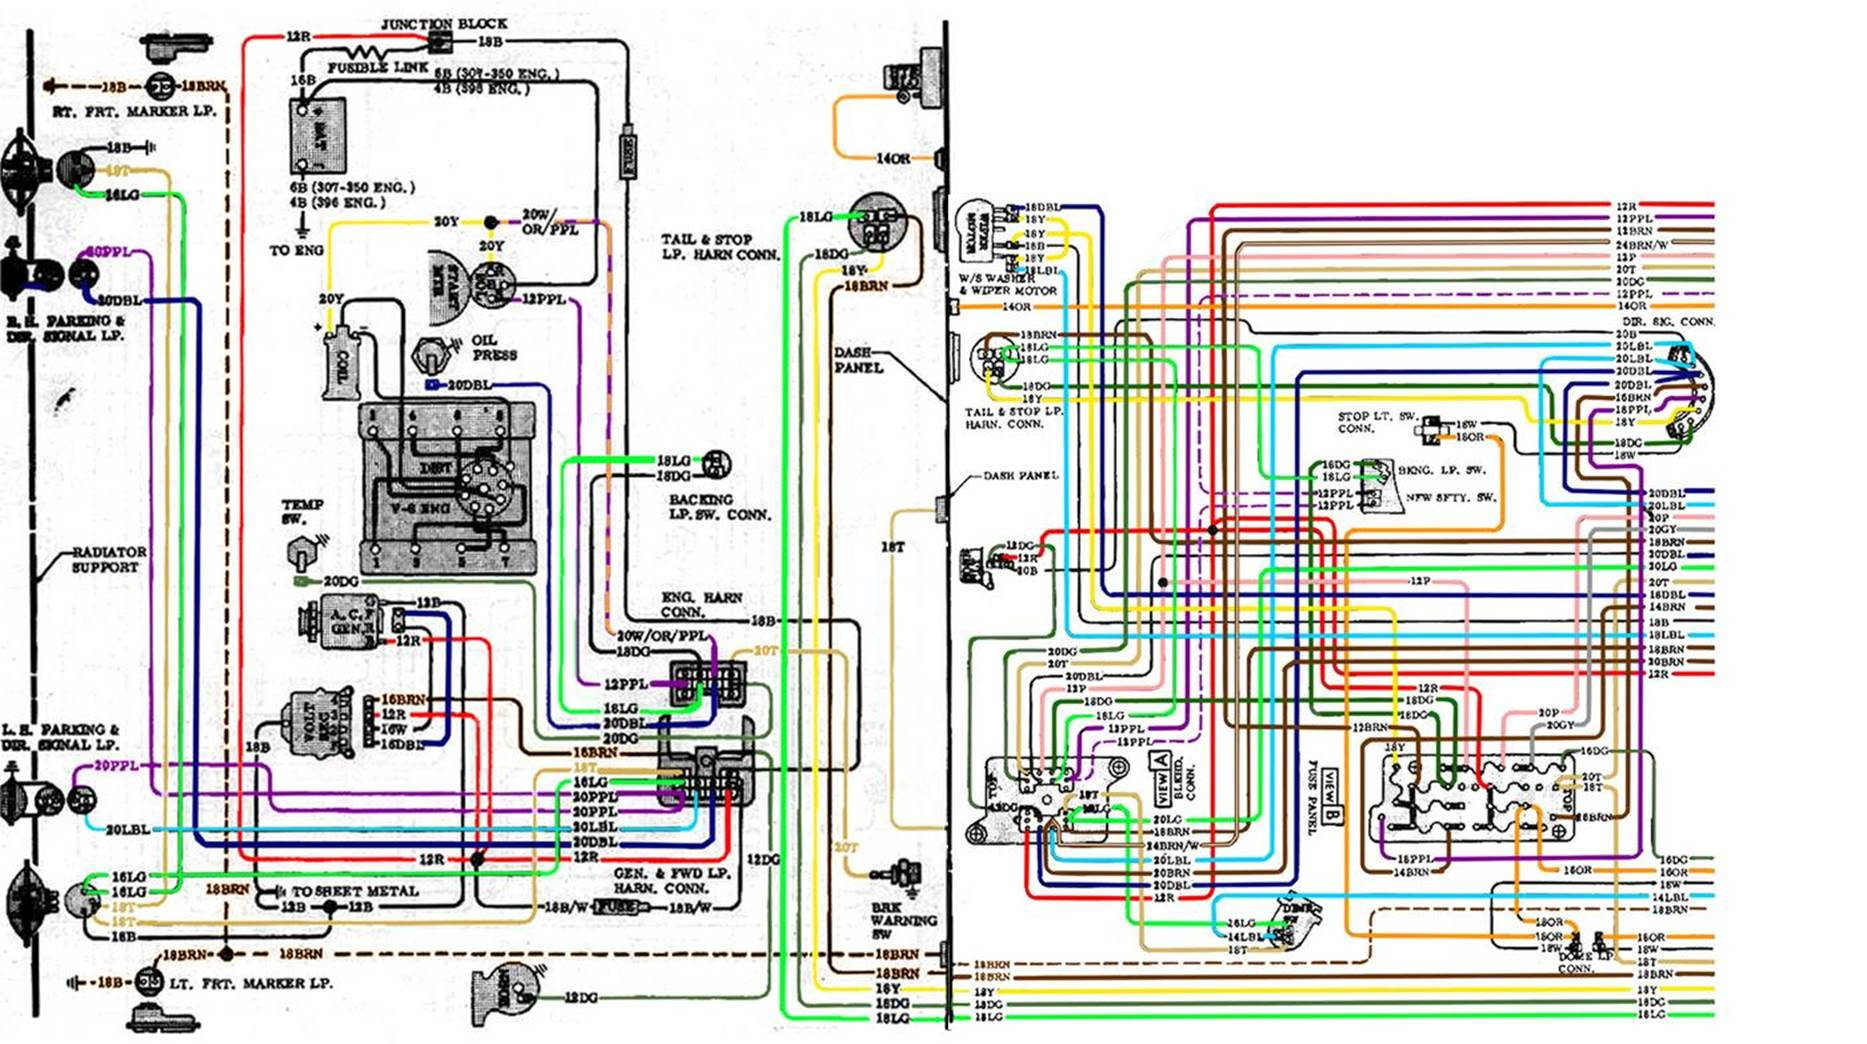 67 72 chevy wiring diagram 1967 chevelle wiring diagram 1967 Chevelle Wiring Diagram #5 1967  sc 1 st  MiFinder : 1963 chevy truck wiring diagram - yogabreezes.com